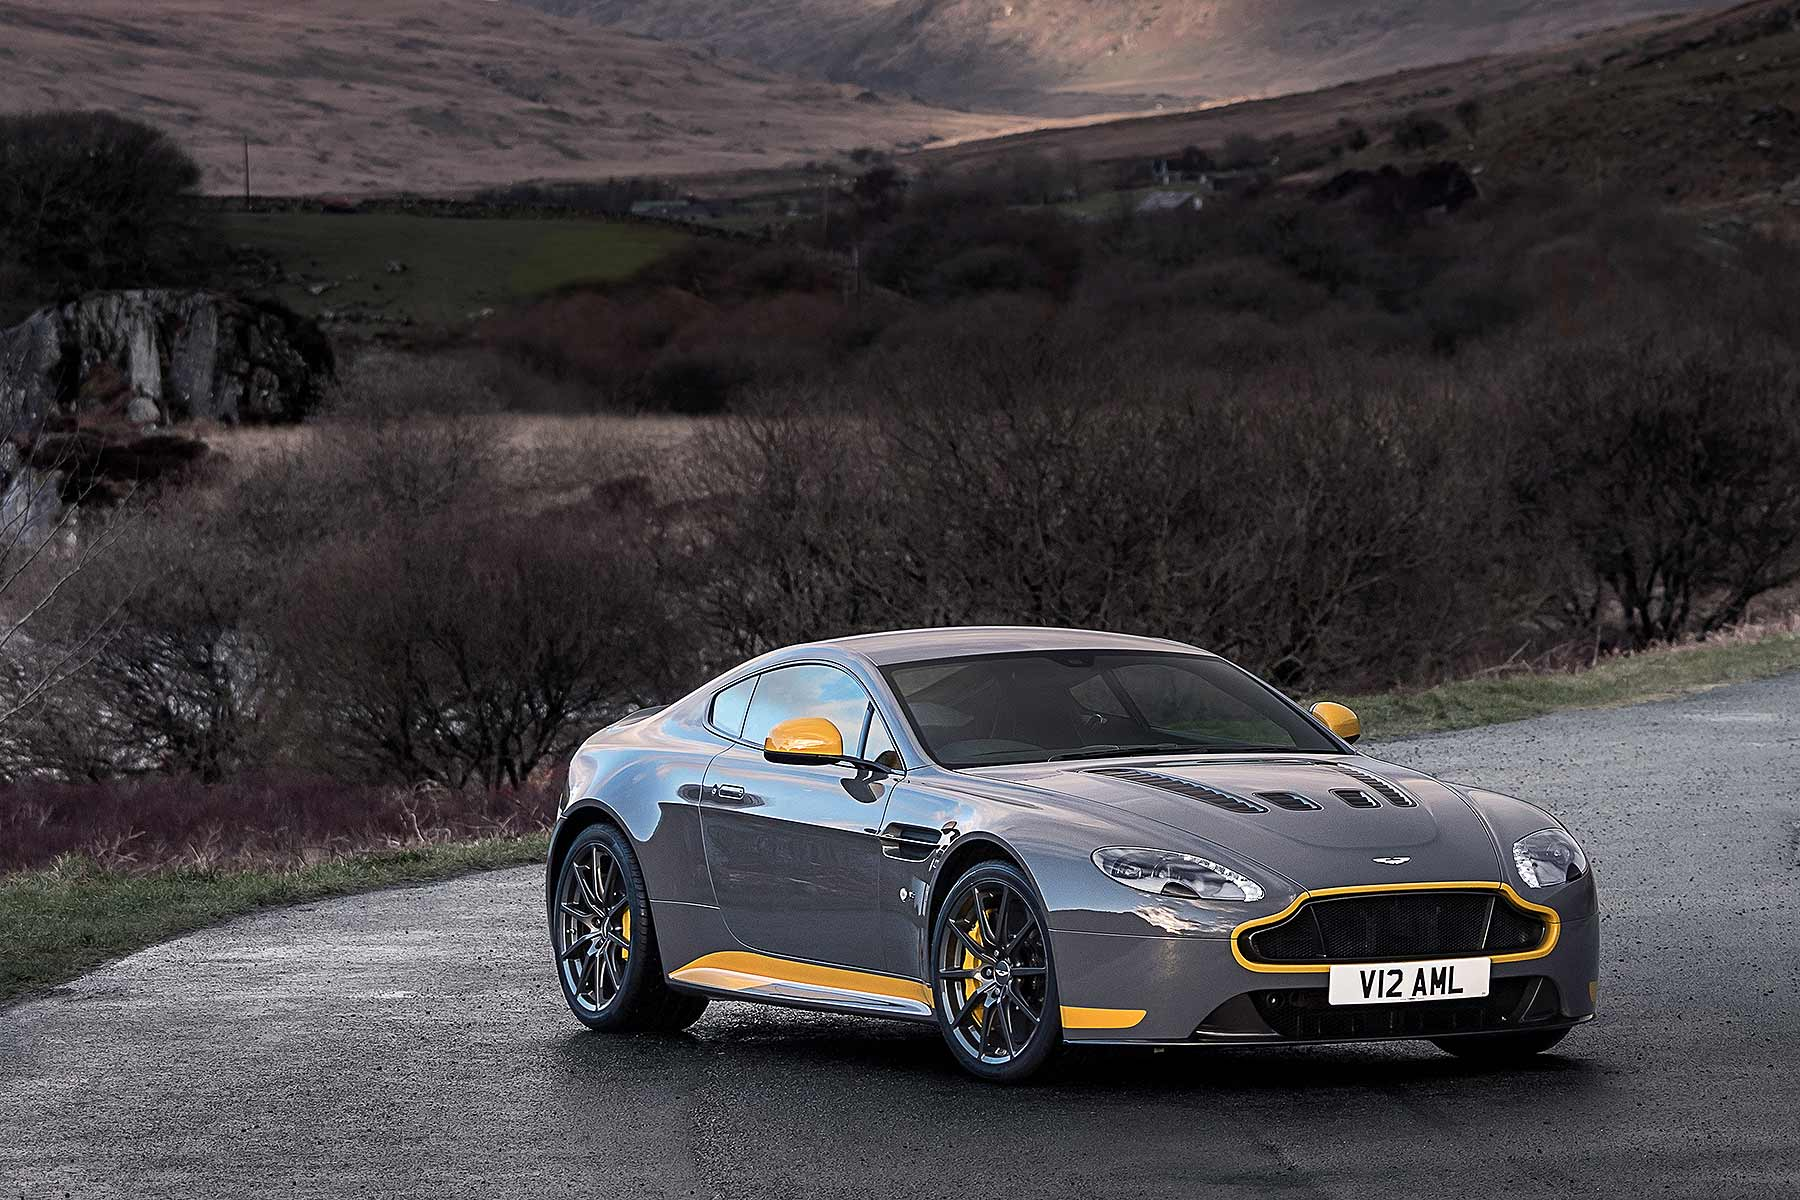 Aston Martin V Vantage S Manual A Change For The Better - Aston martin vantage v12